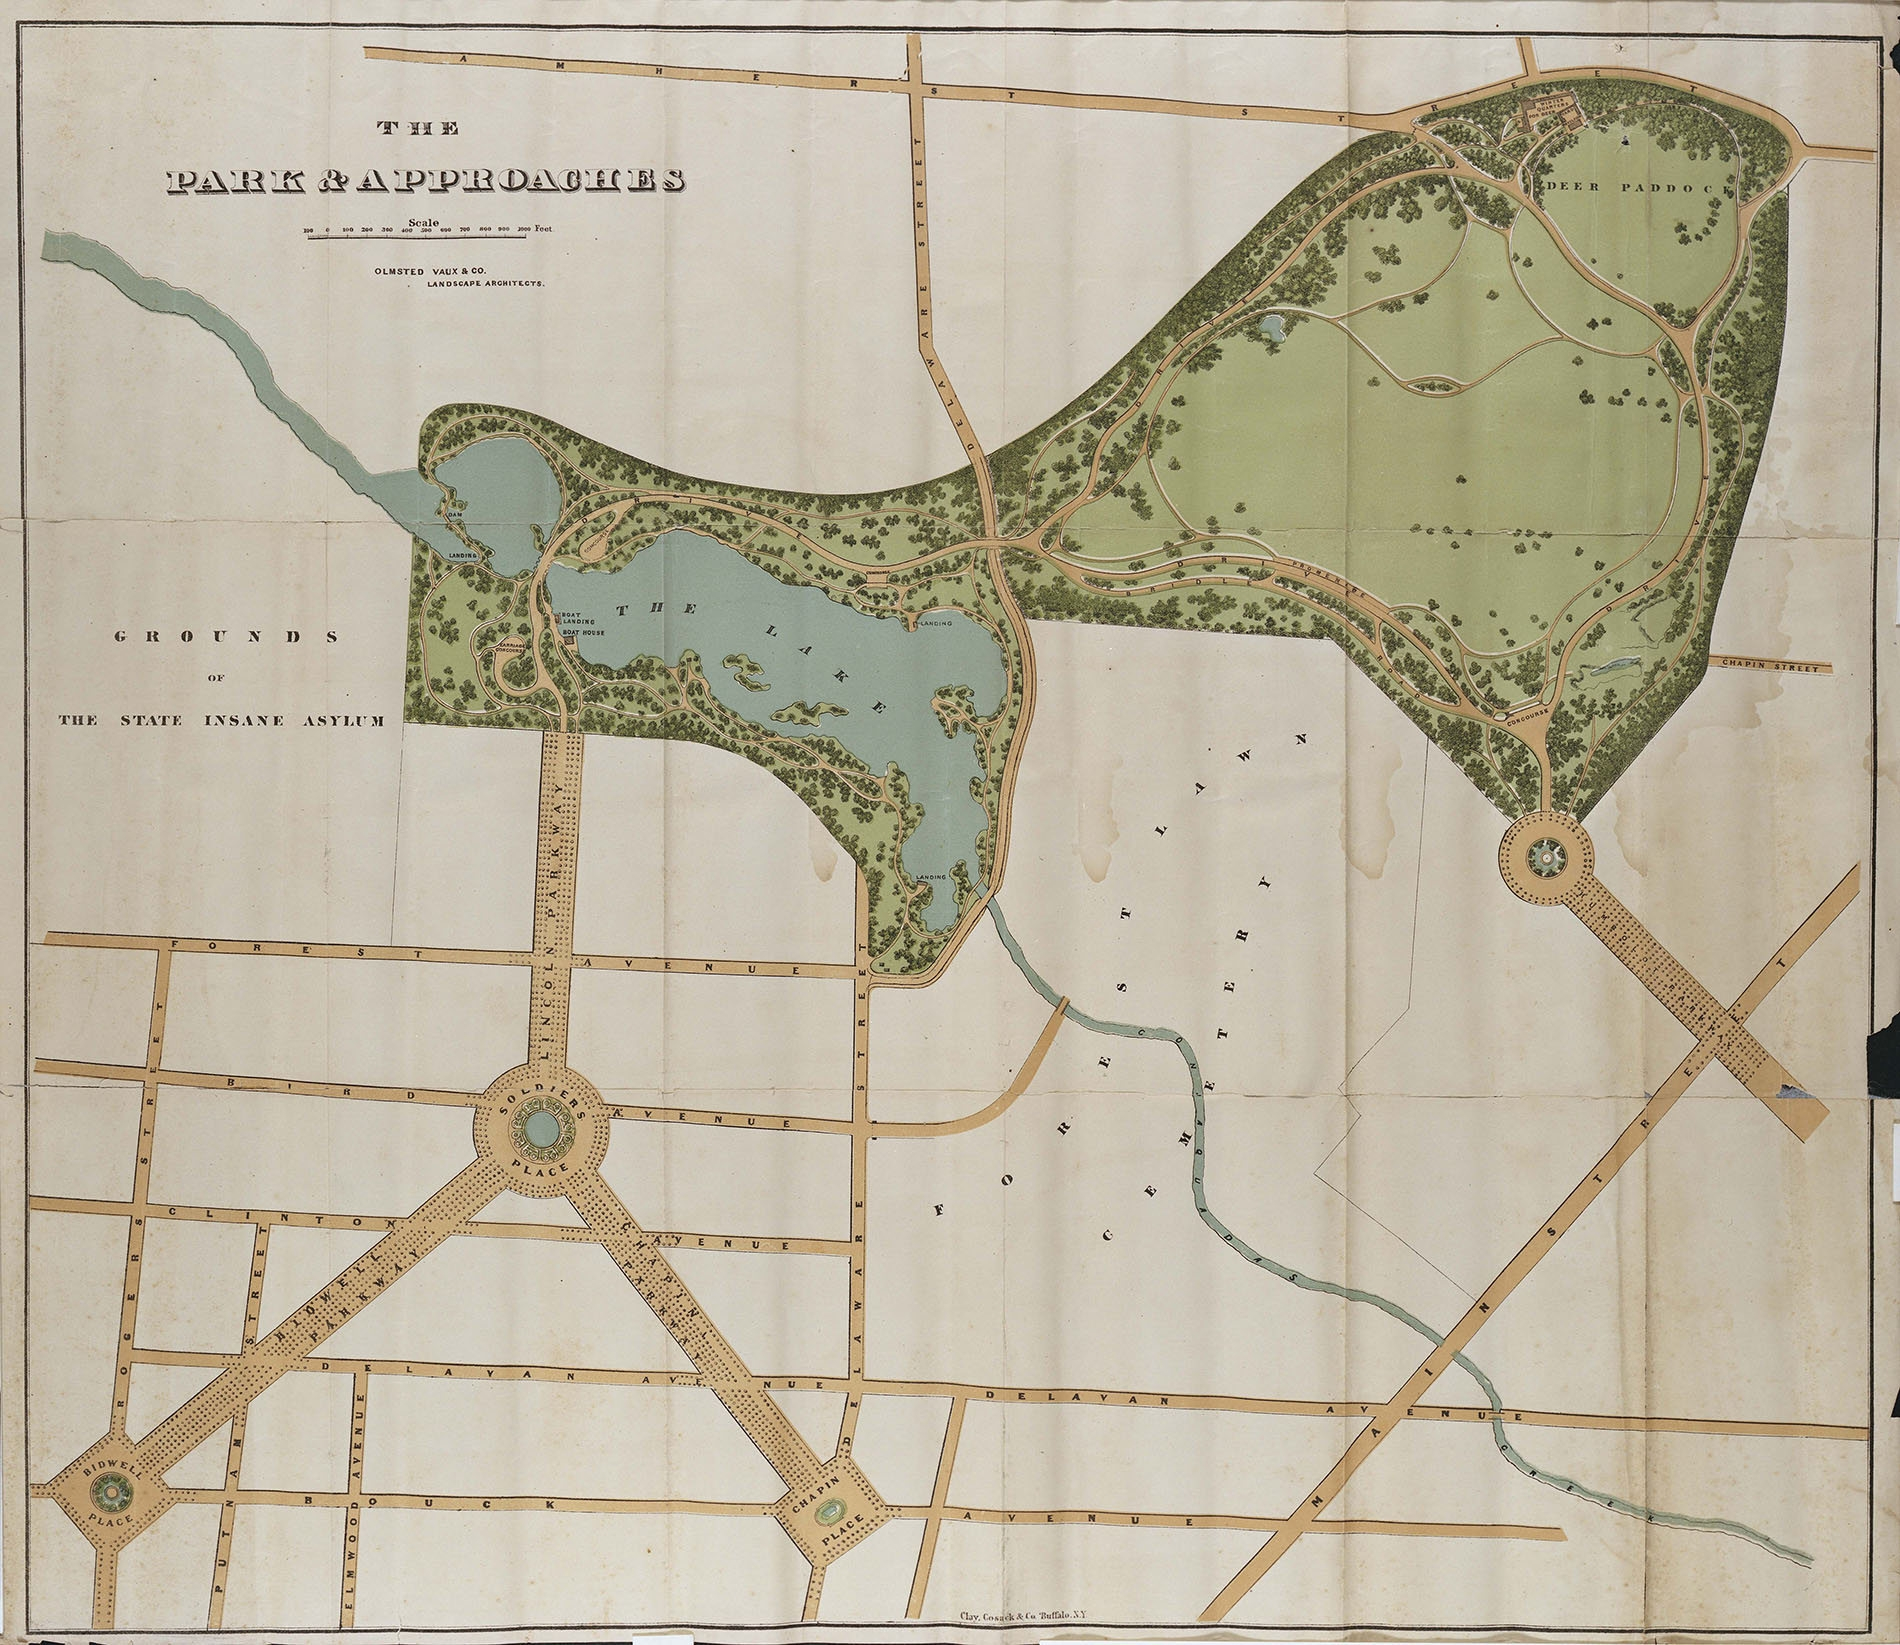 Frederick Law Olmsted's original rendering of Delaware Park.